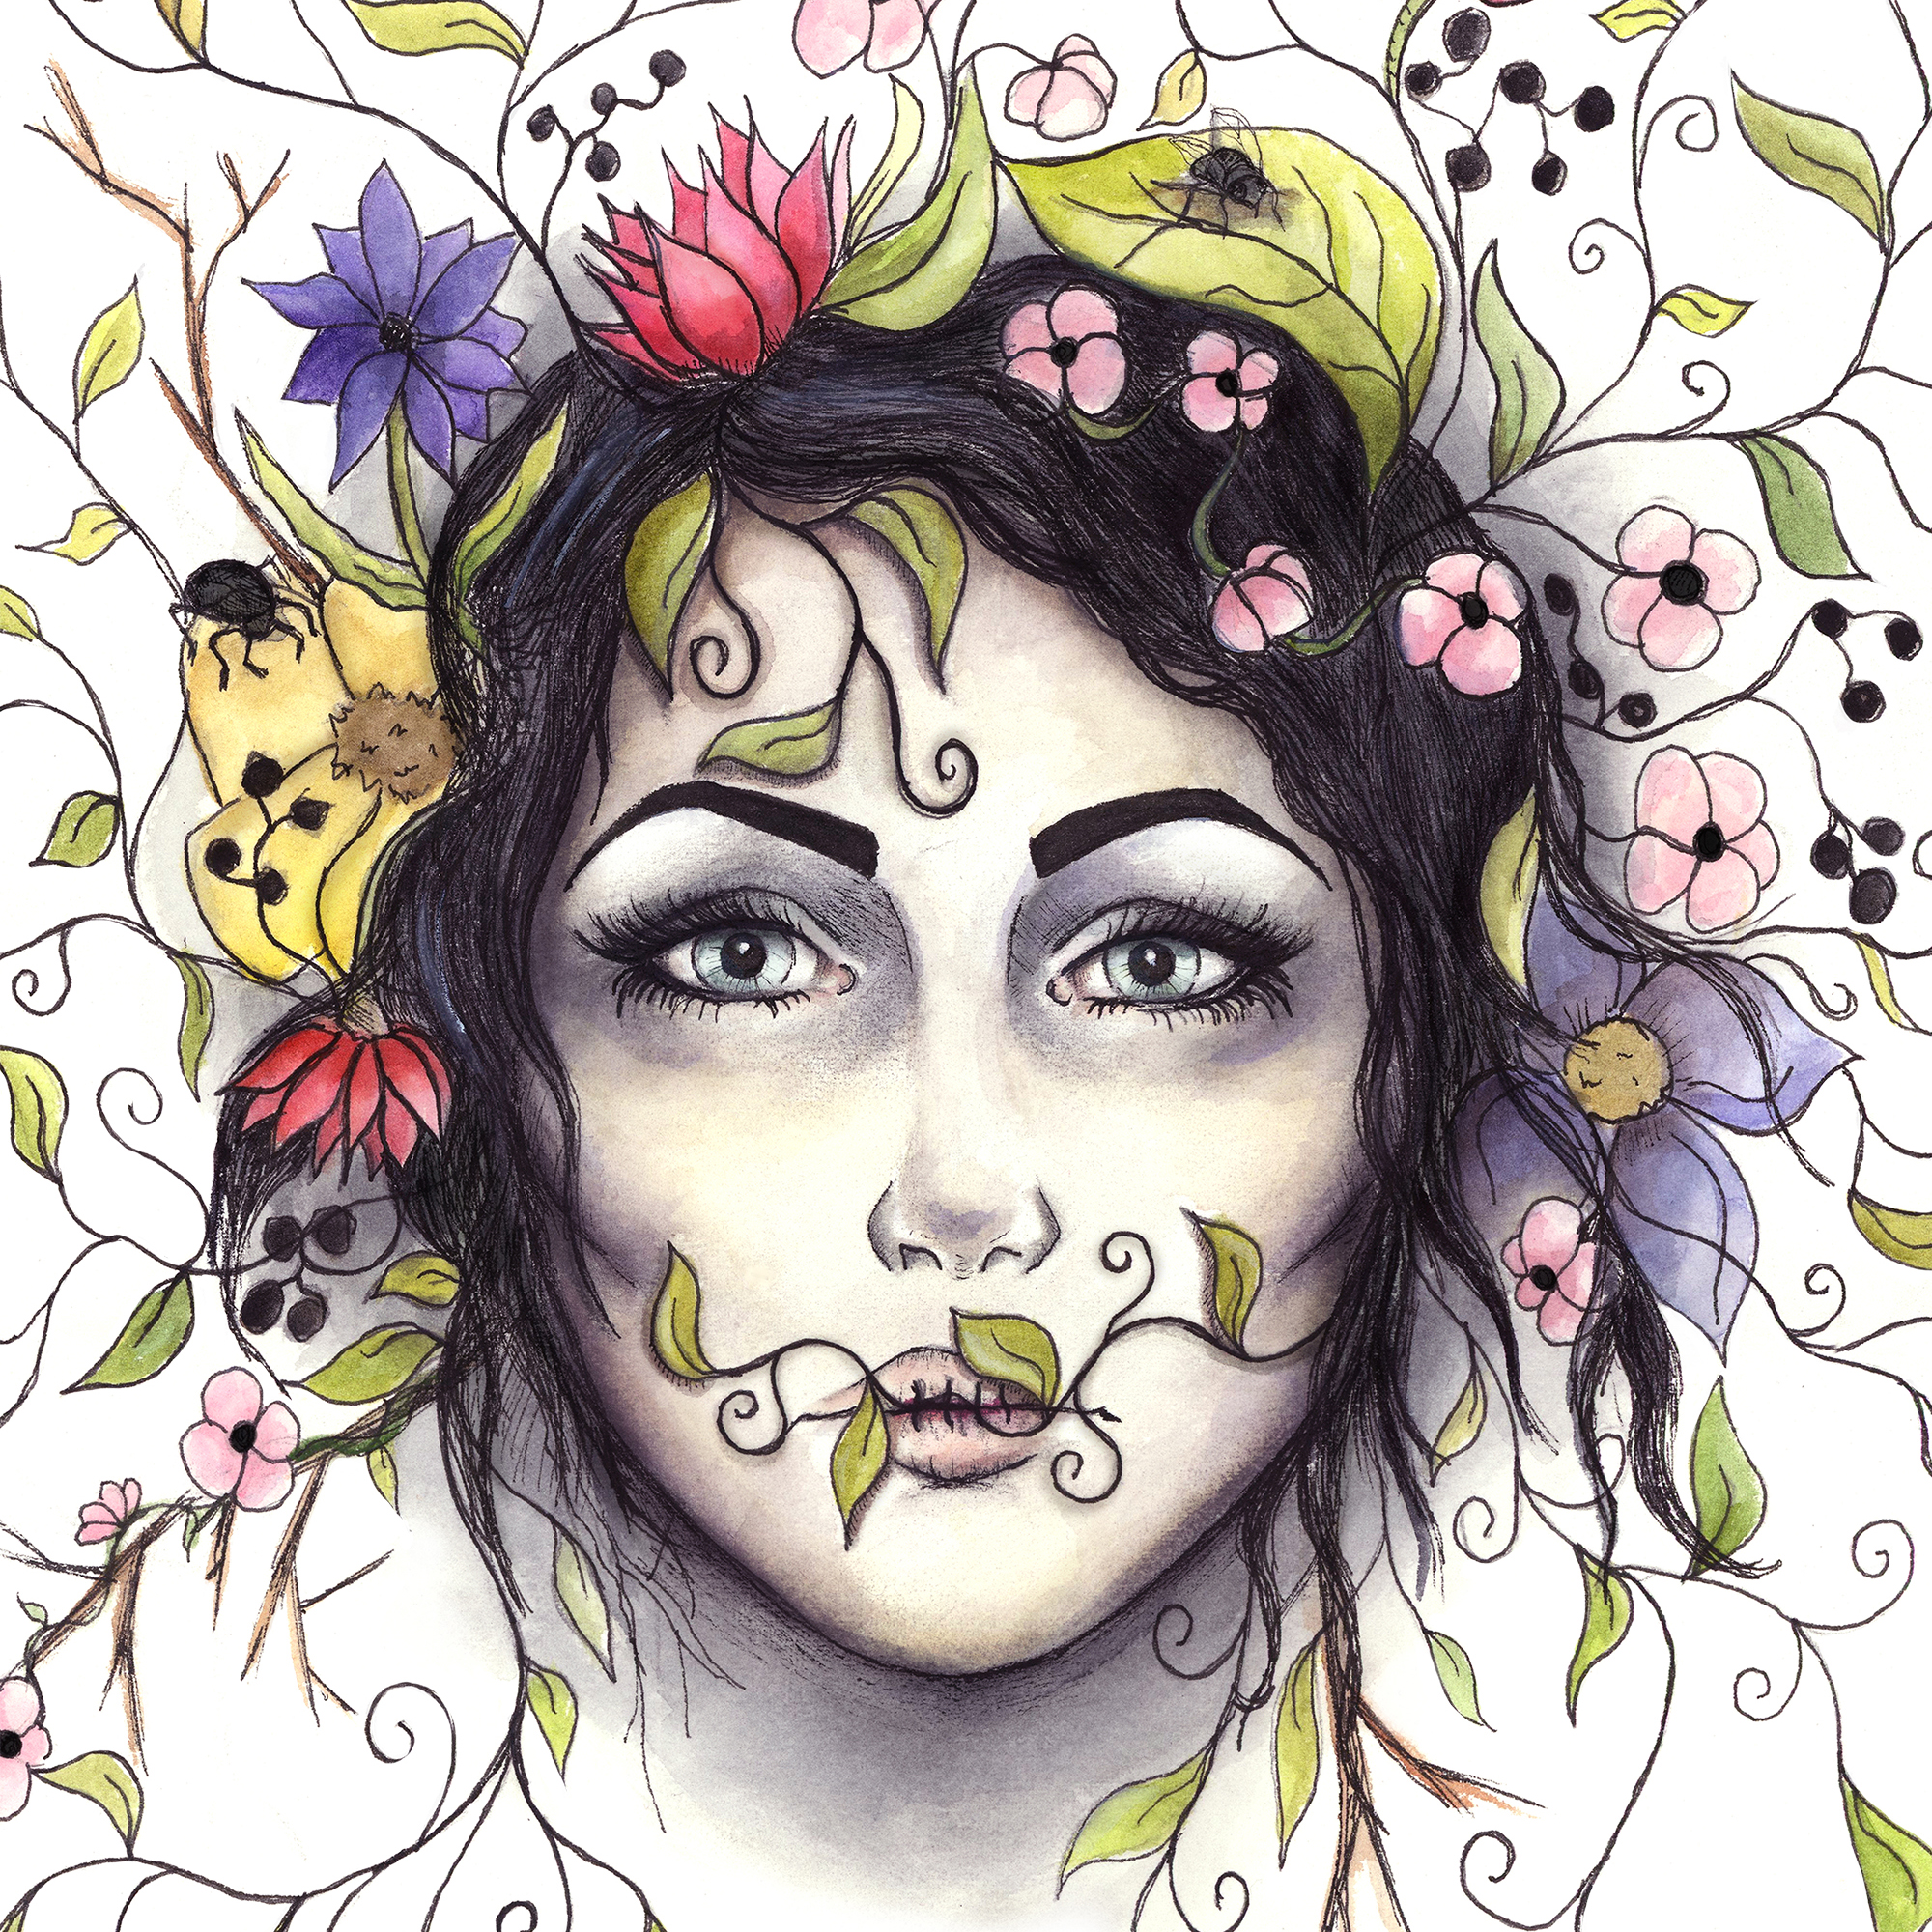 Nature Portrait: Watercolor, ink, and digital media.